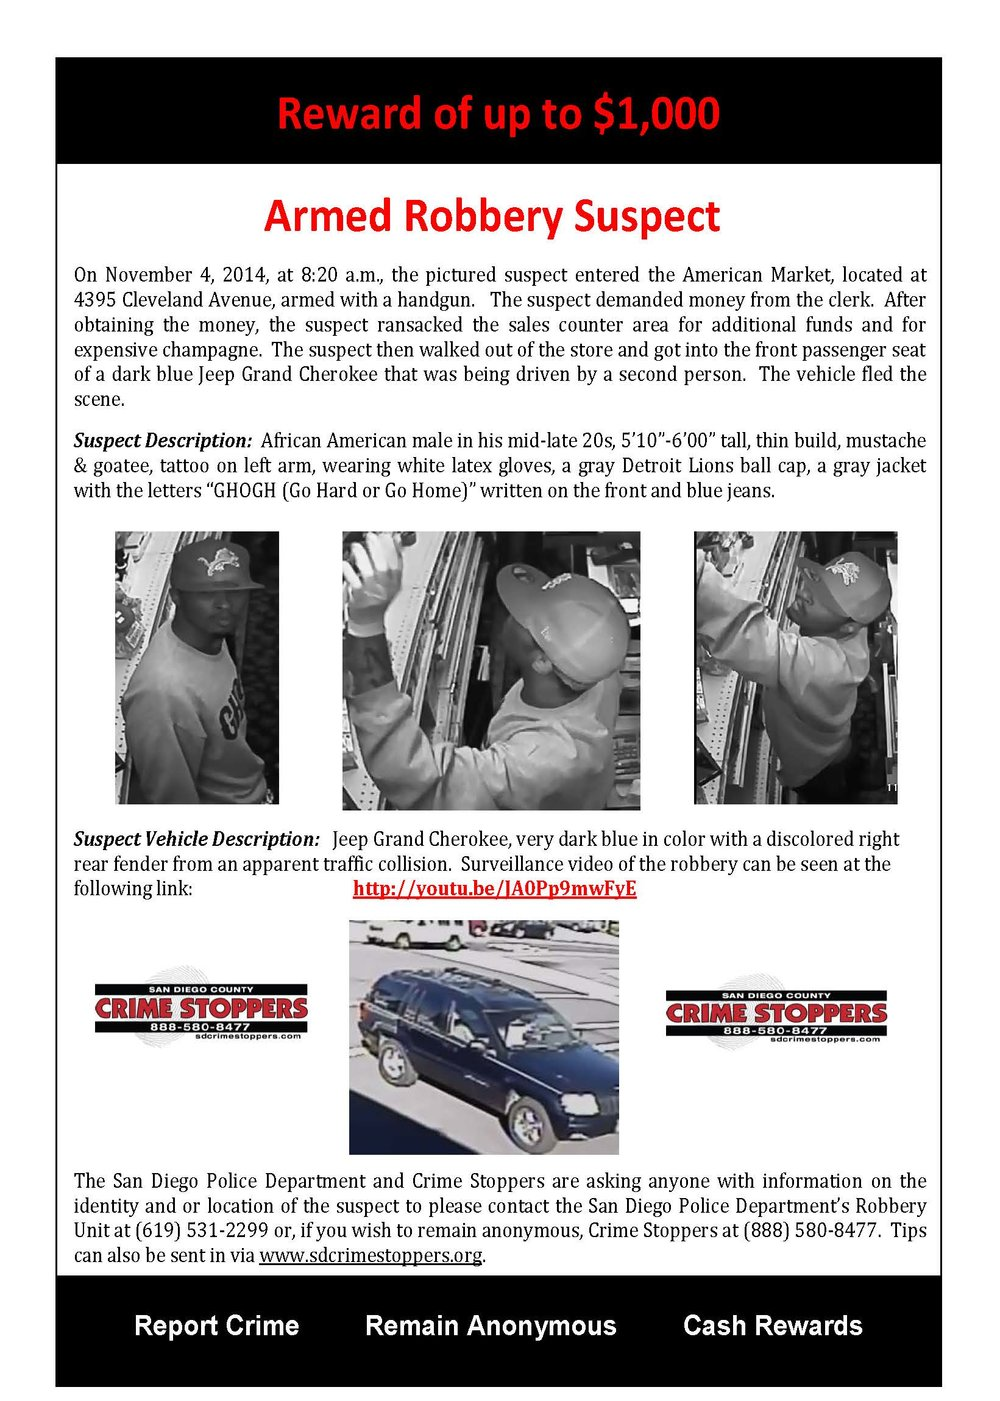 110714 American Market Armed Robbery